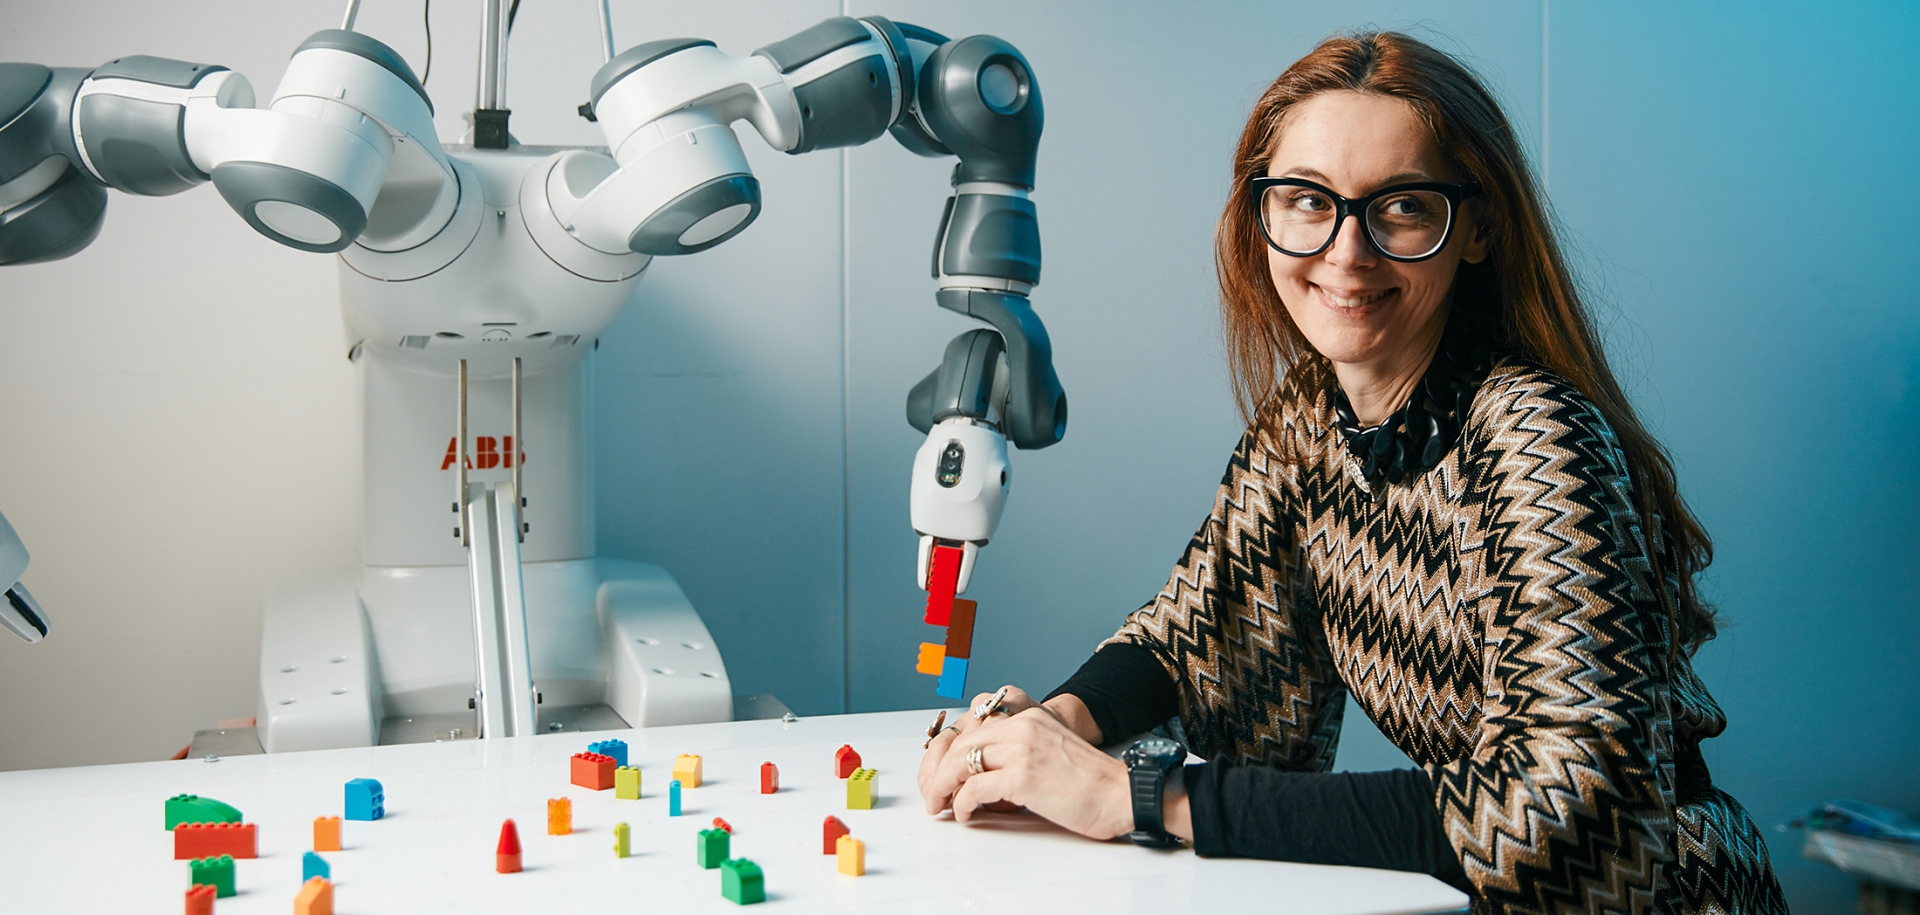 Danica Kragic talks about ethical robots